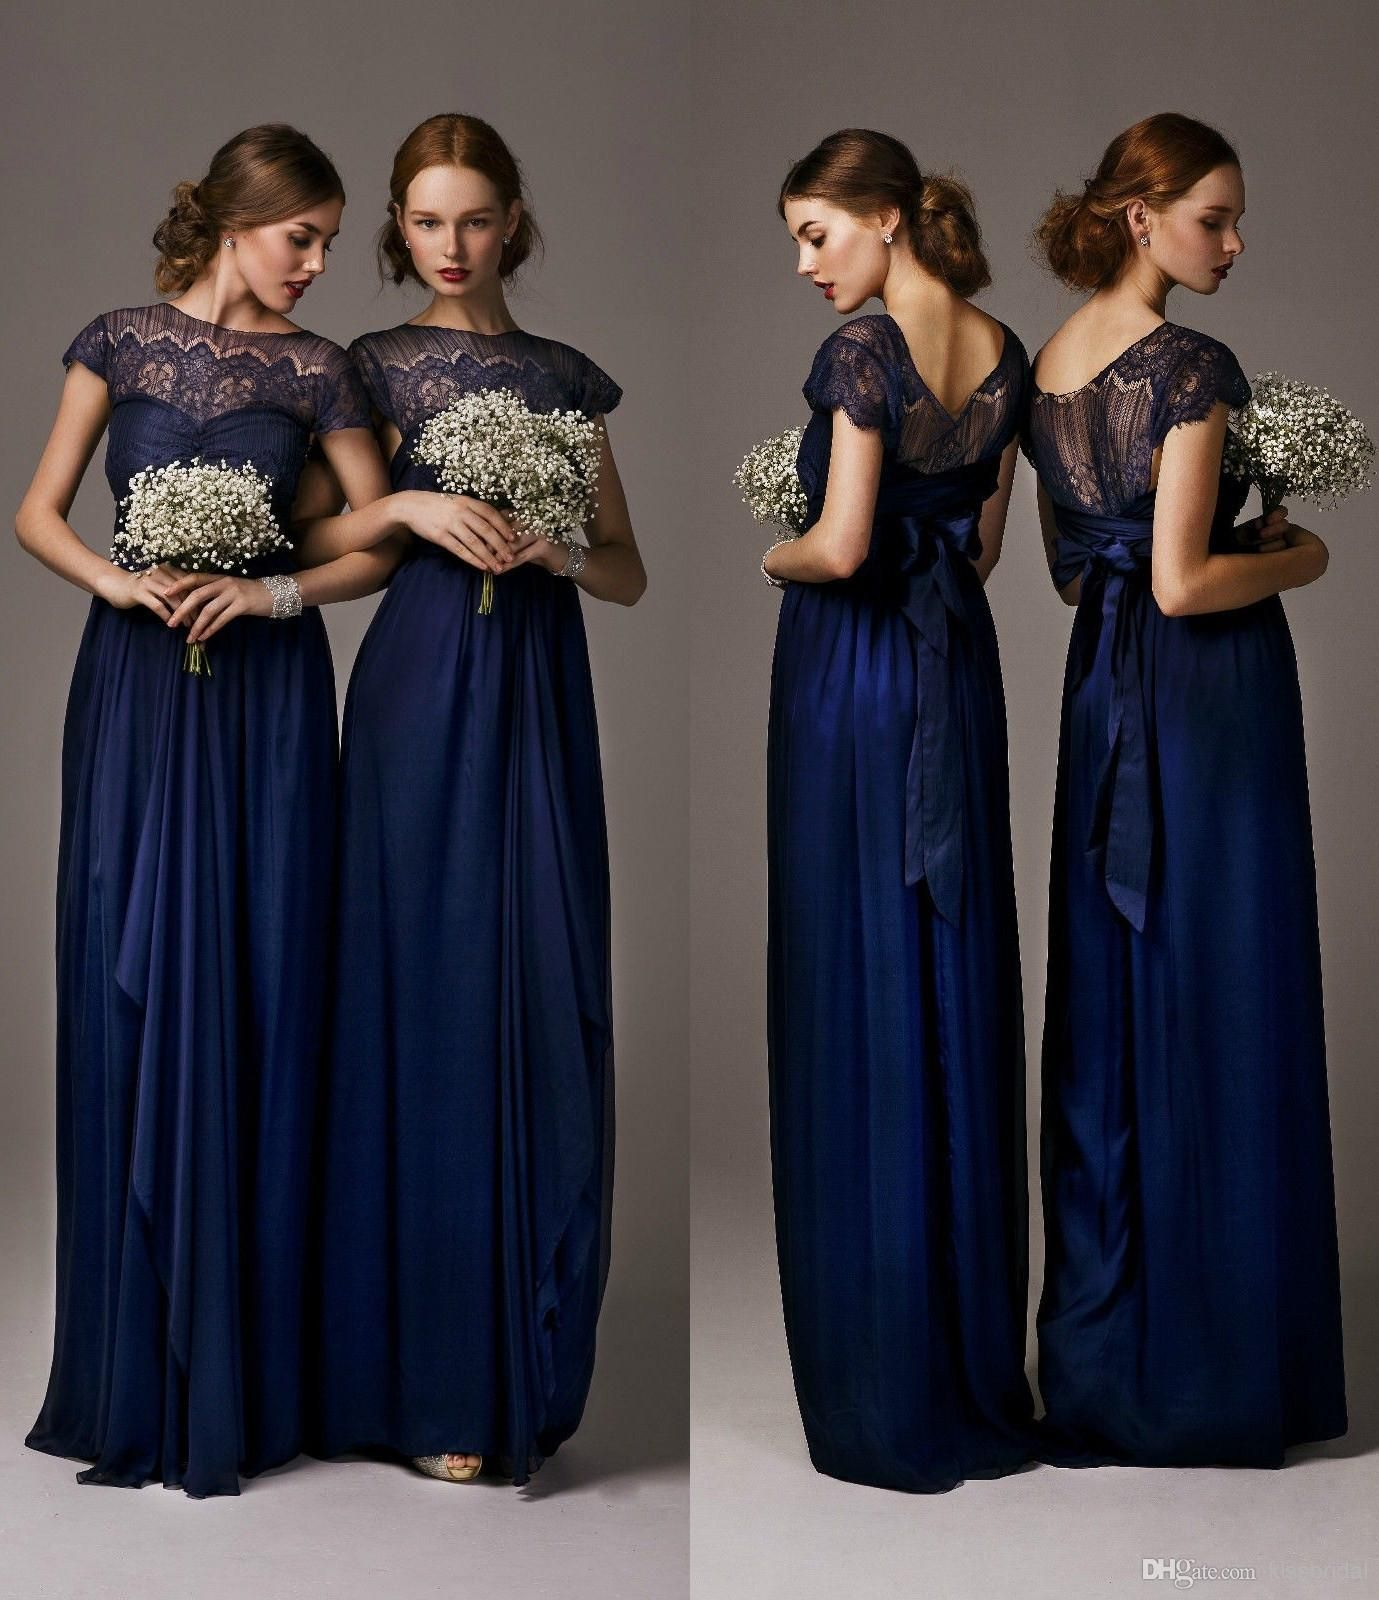 2016 vintage cheap navy blue bridesmaid dresses short sleeves wholesale 2014 bridesmaid dresses buy 2014 elegant cheap royal blue bridesmaid dresses short sleeves ruffles ombrellifo Choice Image